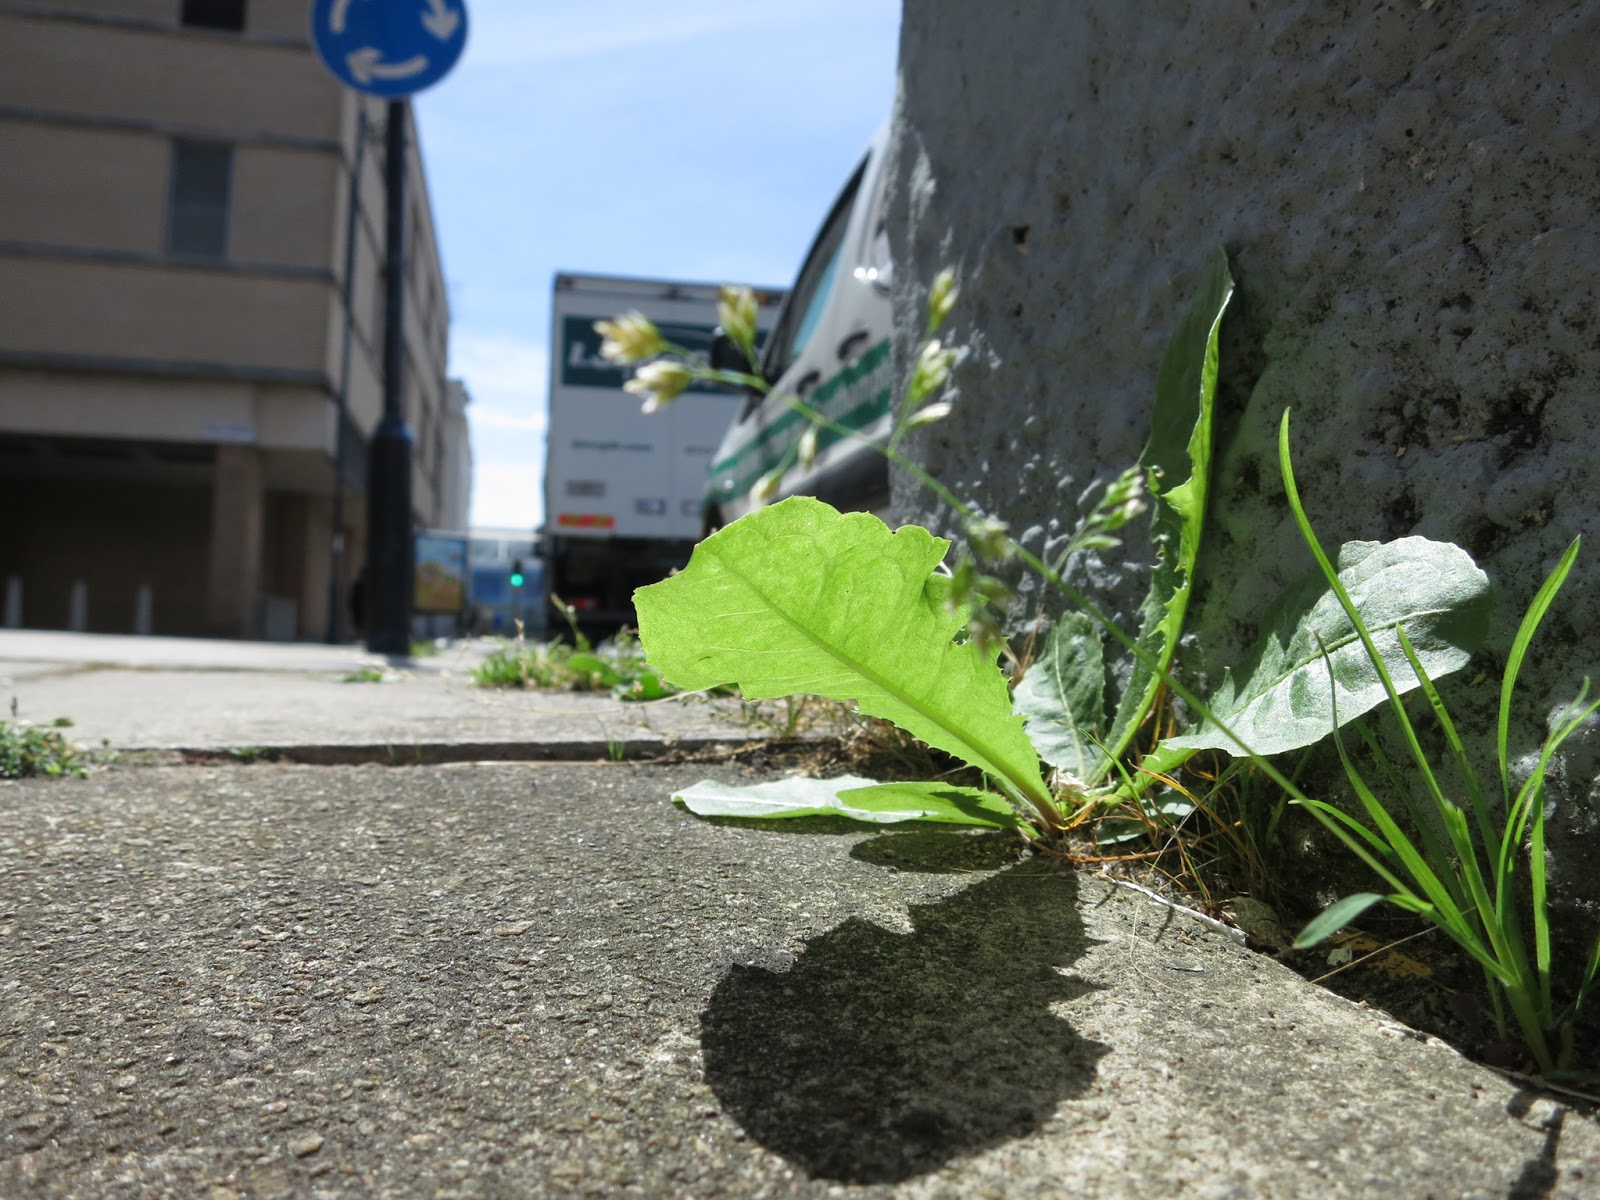 Dandelion (?) at top of pedestrian underpass with traffic in view